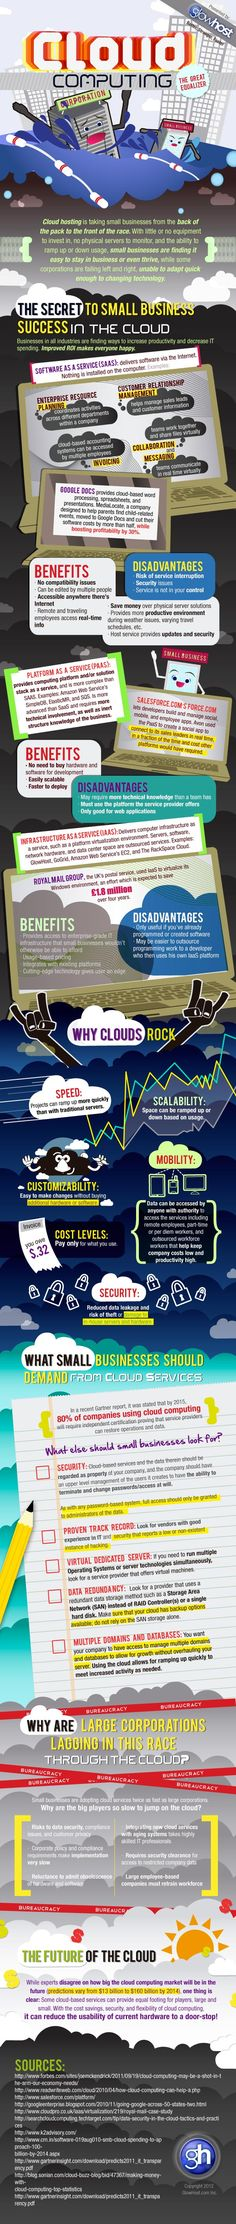 Cloud Computing for Small Business – The Great Equalizer